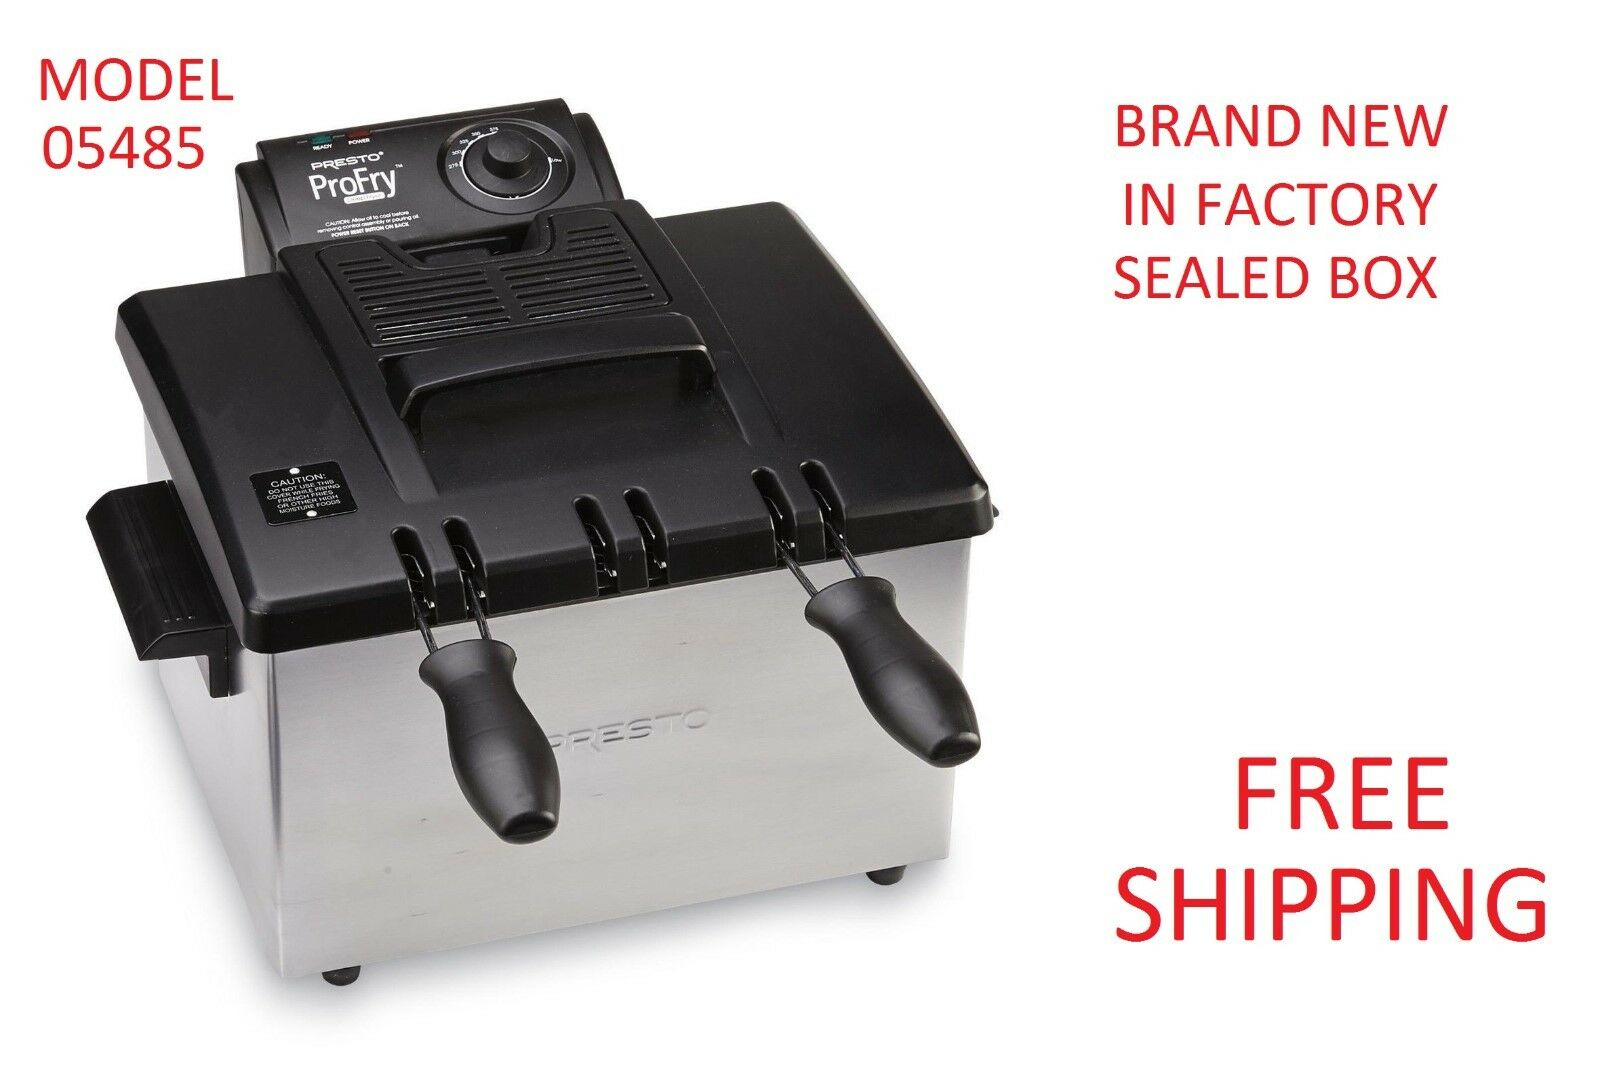 Electric PRESTO Stainless Steel Countertop Deep Fryer with D